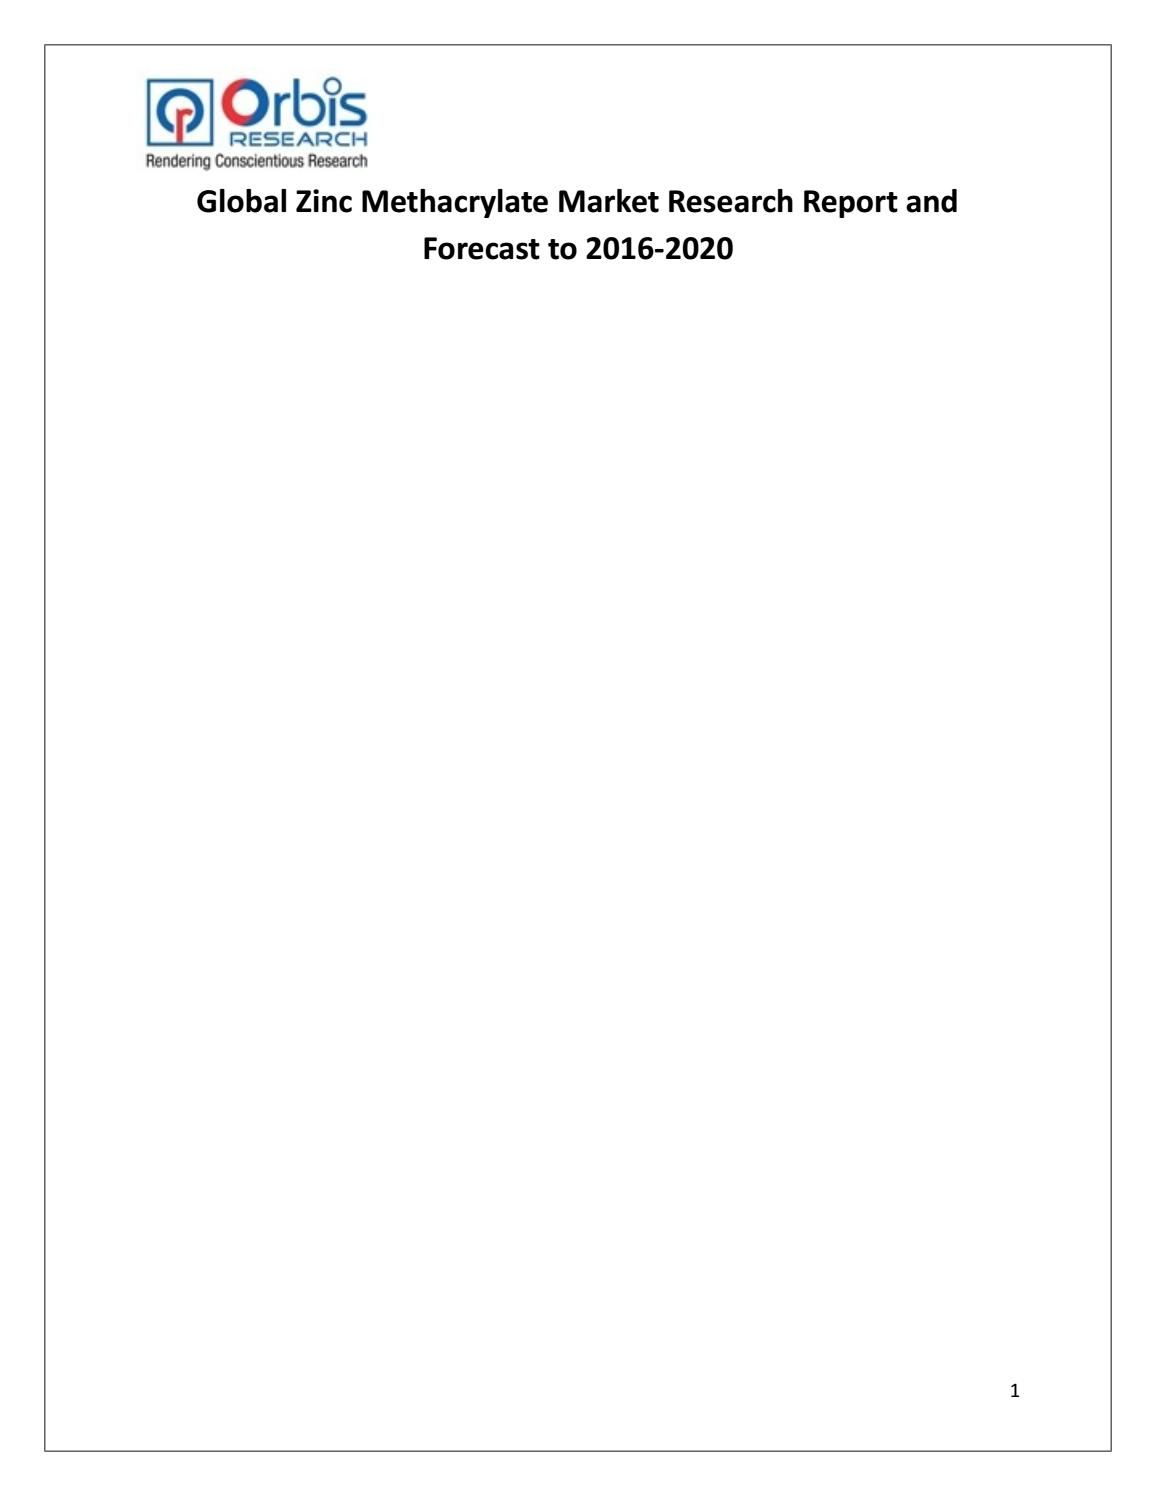 2016 Global Zinc Methacrylate Industry Report is a professional and in-depth research report on the world's major regional market conditions of the Zinc Methacrylate industry, focusing on the main regions (North America, Europe and Asia) and the main countries (United States, Germany, Japan and China).  Request a sample of this report @ http://www.orbisresearch.com/contacts/request-sample/154305 .